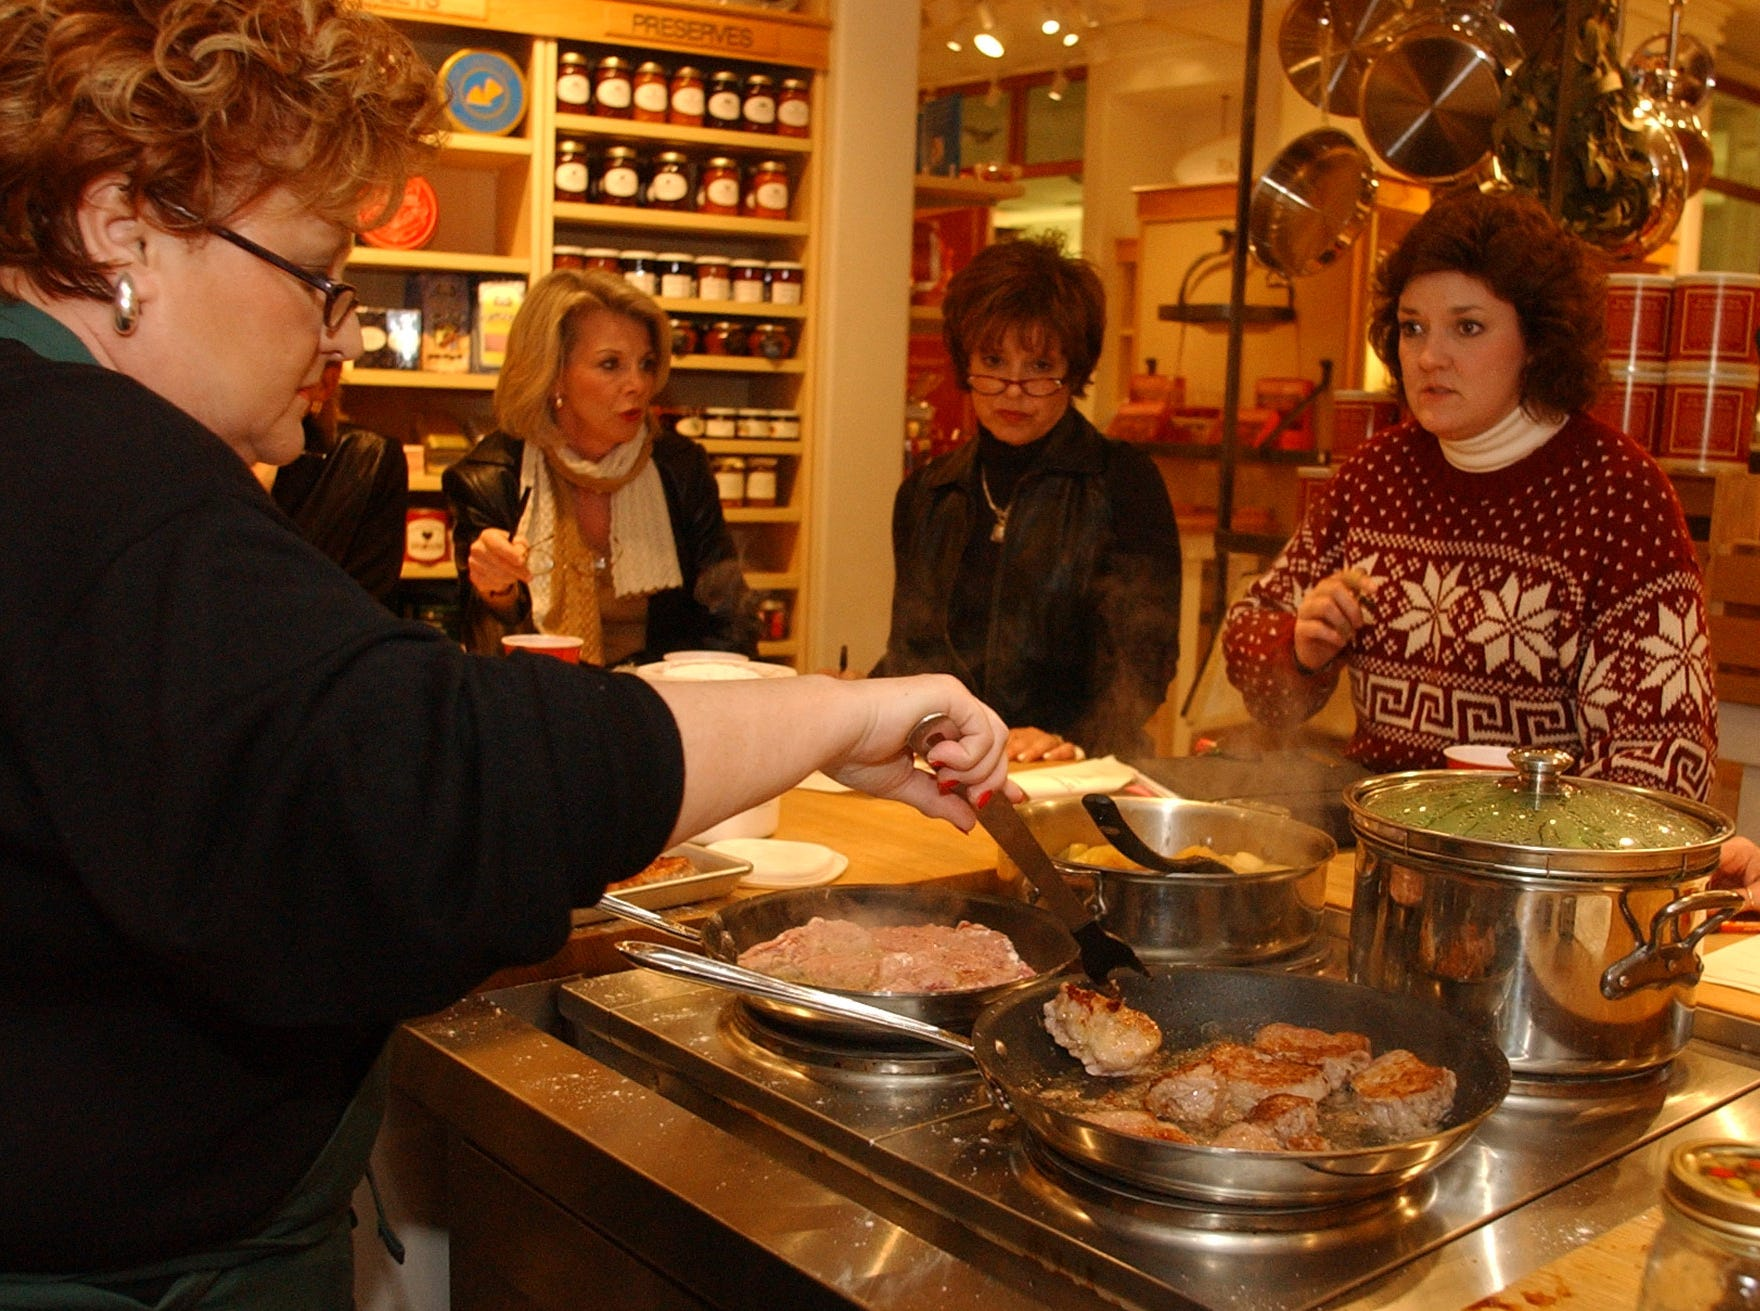 0124veal.1.CC--living---Barbara  Tenney at the Williams-Sonoma stoer in West Towne Mall demonstrates how to cook veal during a cooking class held recently at the store. From left Debbie Diddle, Sandy Love and Dori Miller listen and watch.  News-Sentinel staff photo by Cathy Clarke. ASA200 Image# DSC_0010.JPG